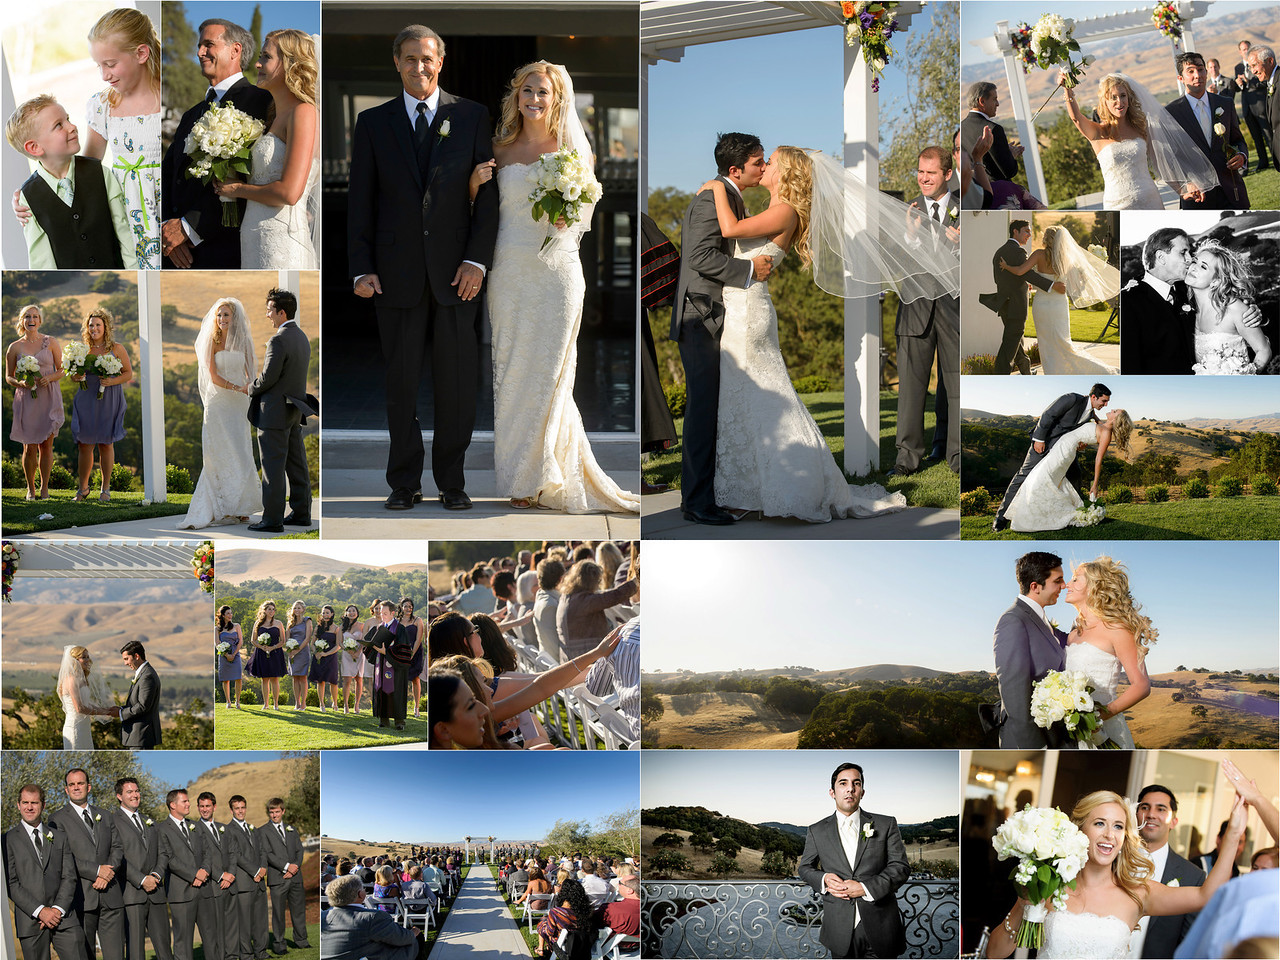 Jamie_and_Greg_Willow_Heights_Mansion_Morgan_Hill_Wedding_Photography_4x6_Photo_Board_05